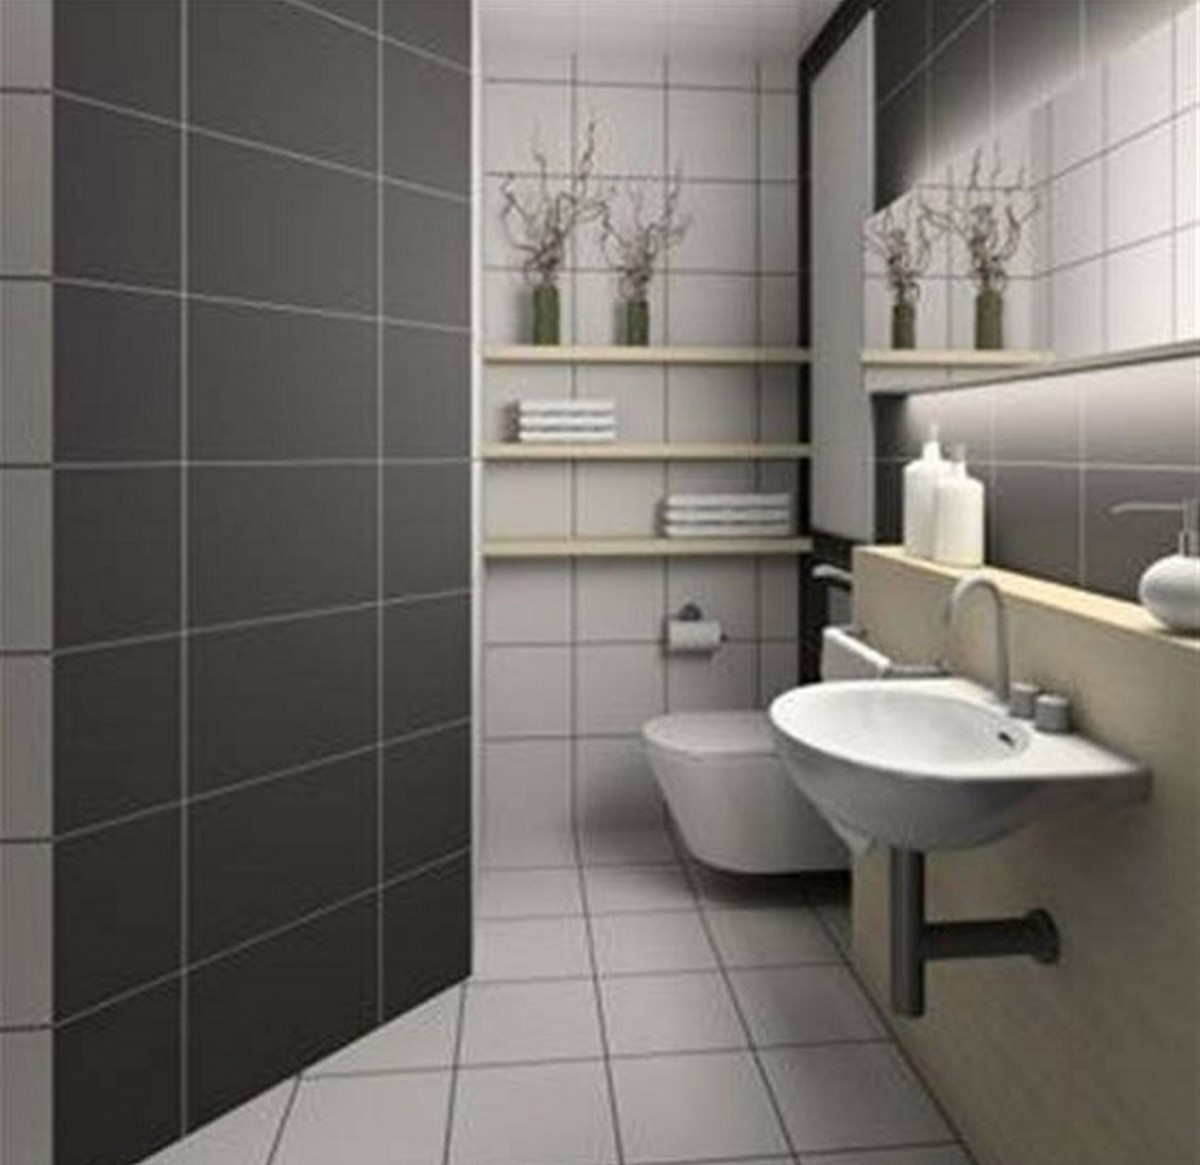 1 Color Ideas For Bathrooms Grey Color Bathroom   2c3b317e4431ed300bcc35a1d491b73d 6a00d8341dabcb53ef017d40d60d7b970c ...